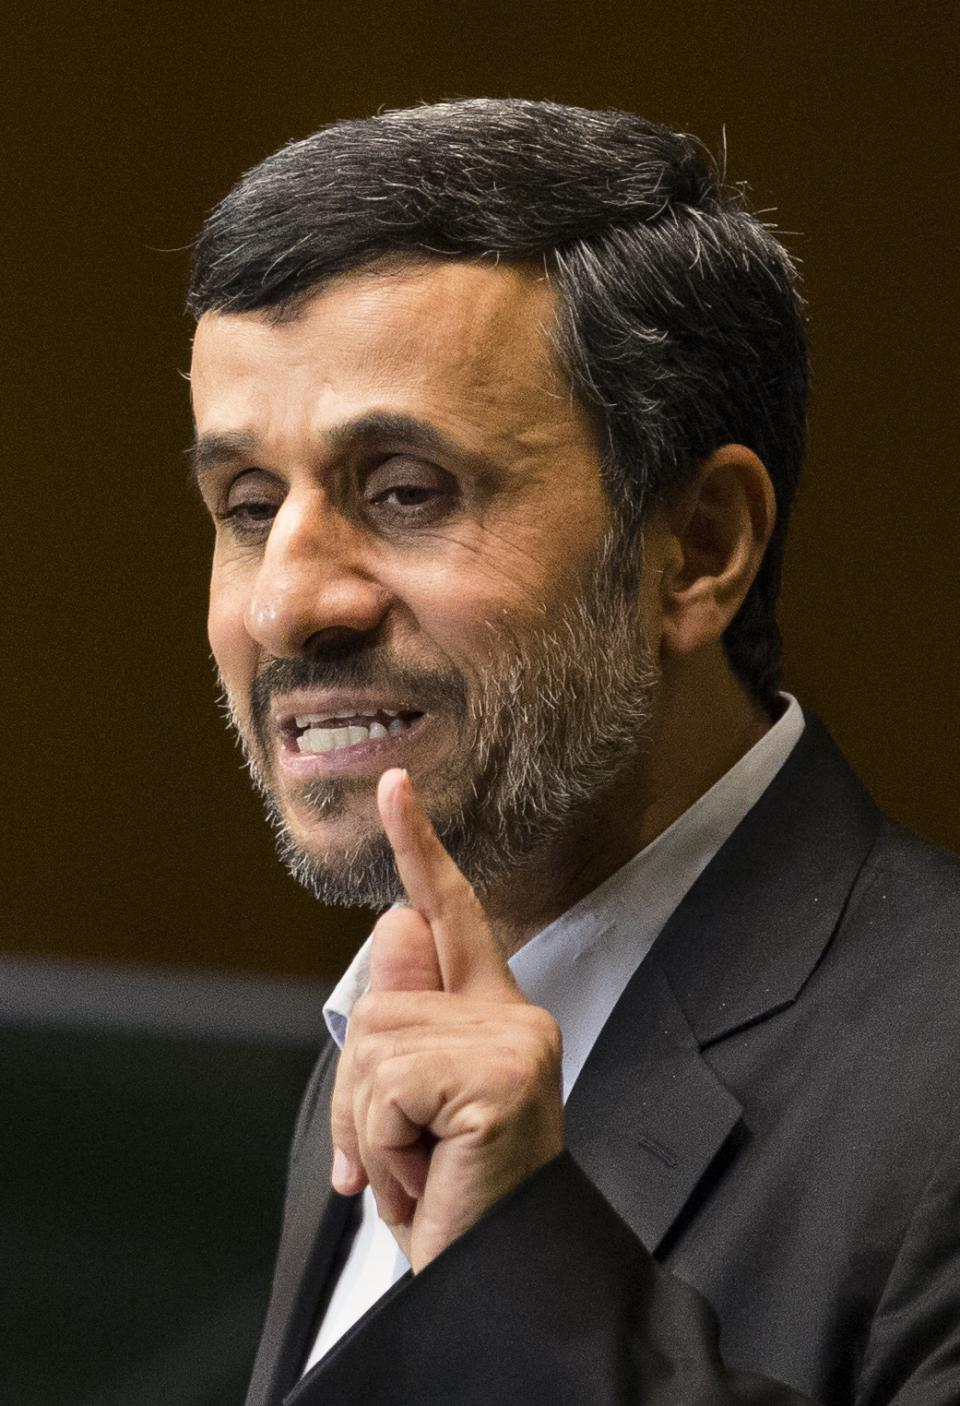 Iranian President Mahmoud Ahmadinejad addresses the 67th United Nations General Assembly, at U.N. headquarters, Wednesday, Sept. 26, 2012. (AP Photo/John Minchillo)